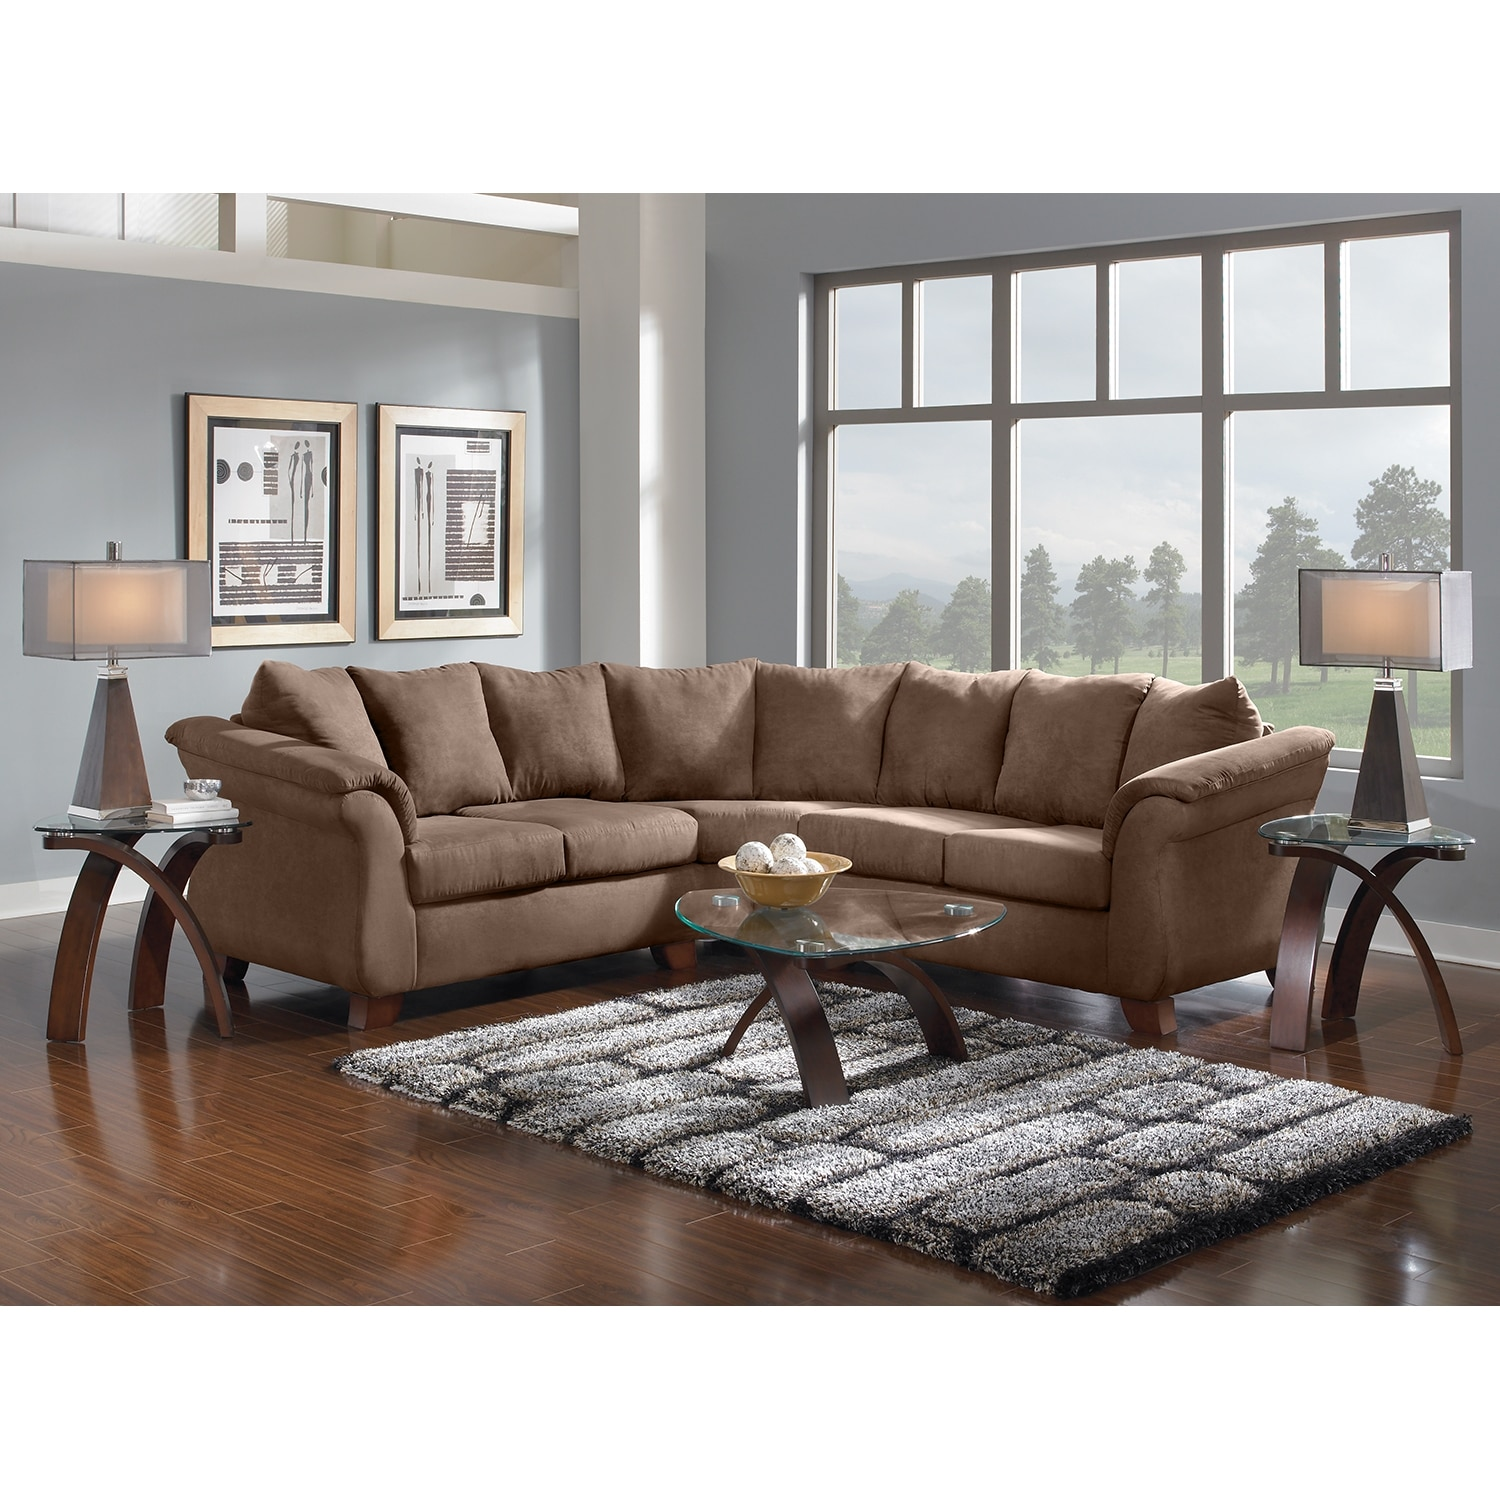 Adrian taupe ii 2 pc sectional value city furniture for The living room furniture